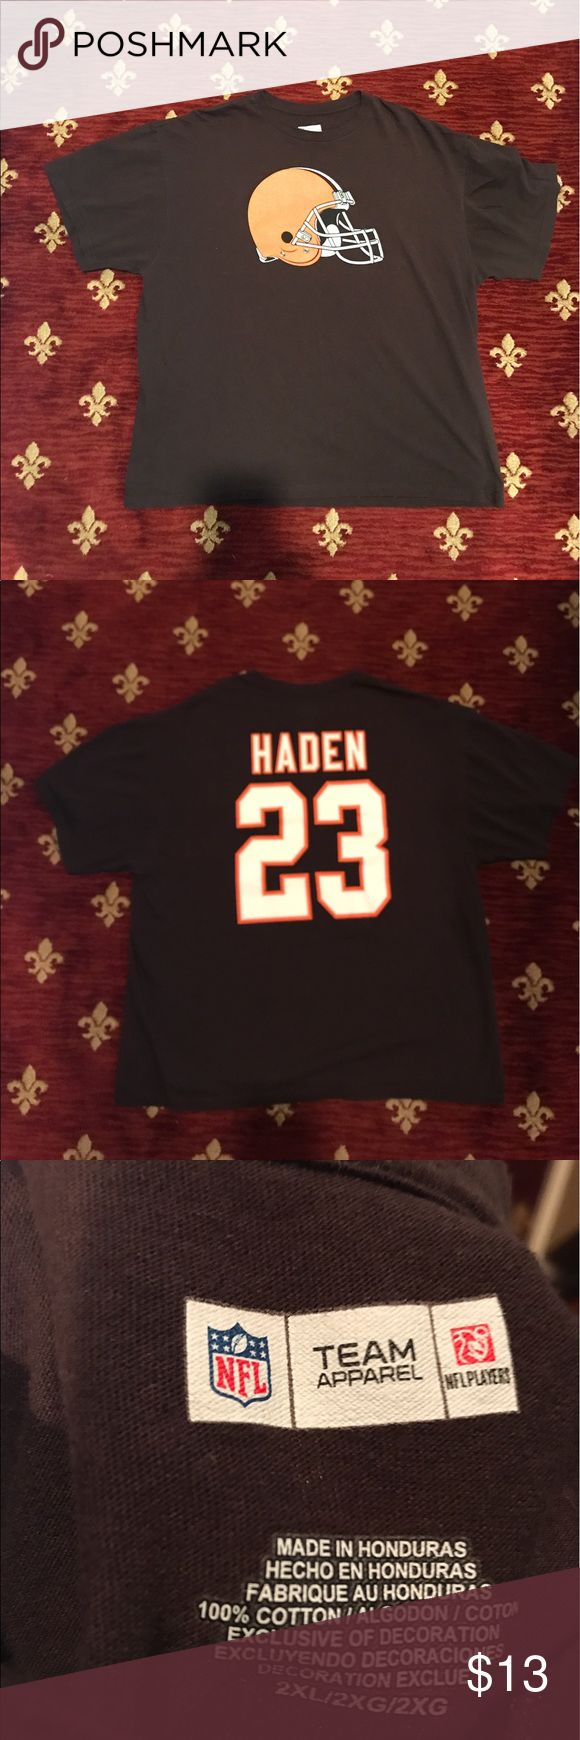 Cleveland Browns Joe Haden Shirt In great condition, 9/10. NFL Shirts Tees - Short Sleeve